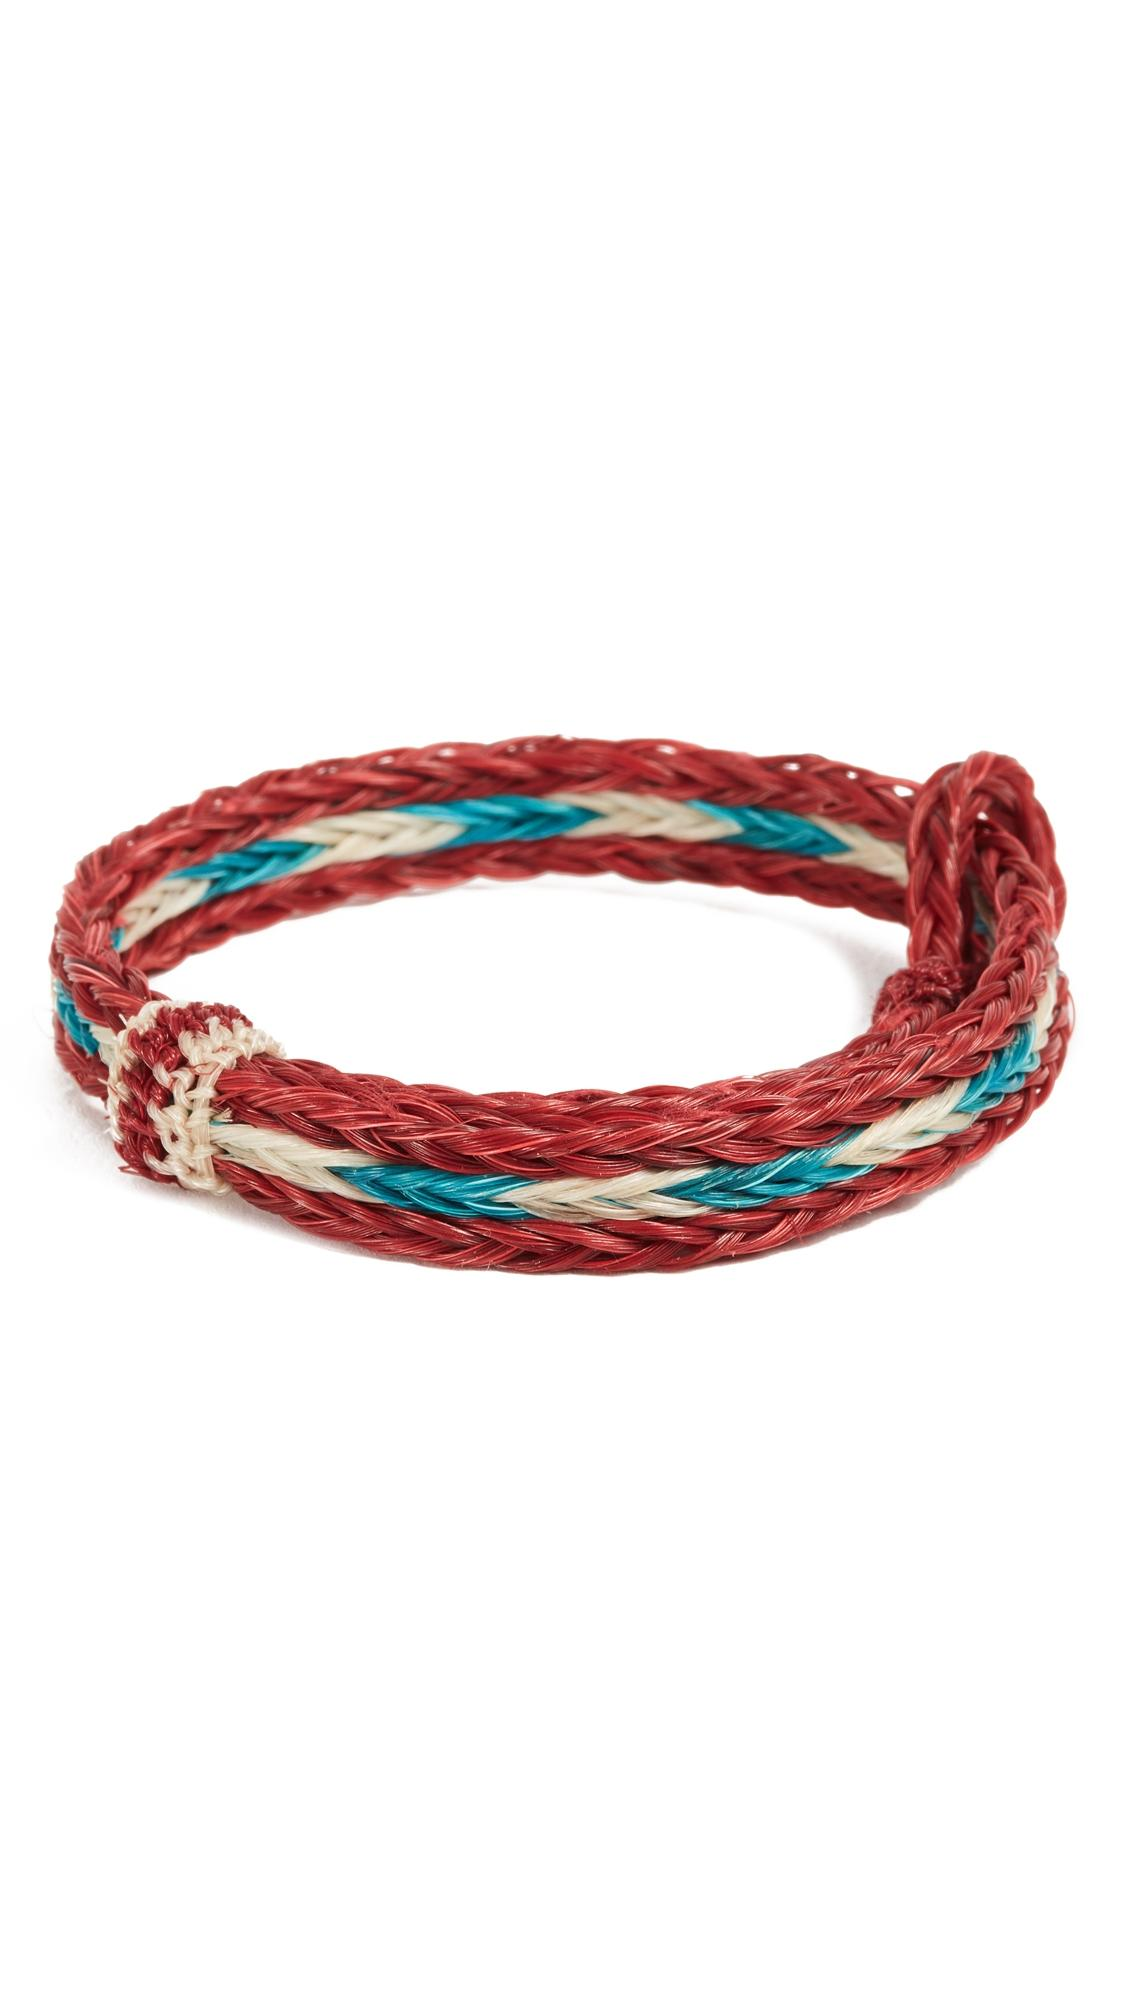 Chamula Hh Braided Bracelet In Red